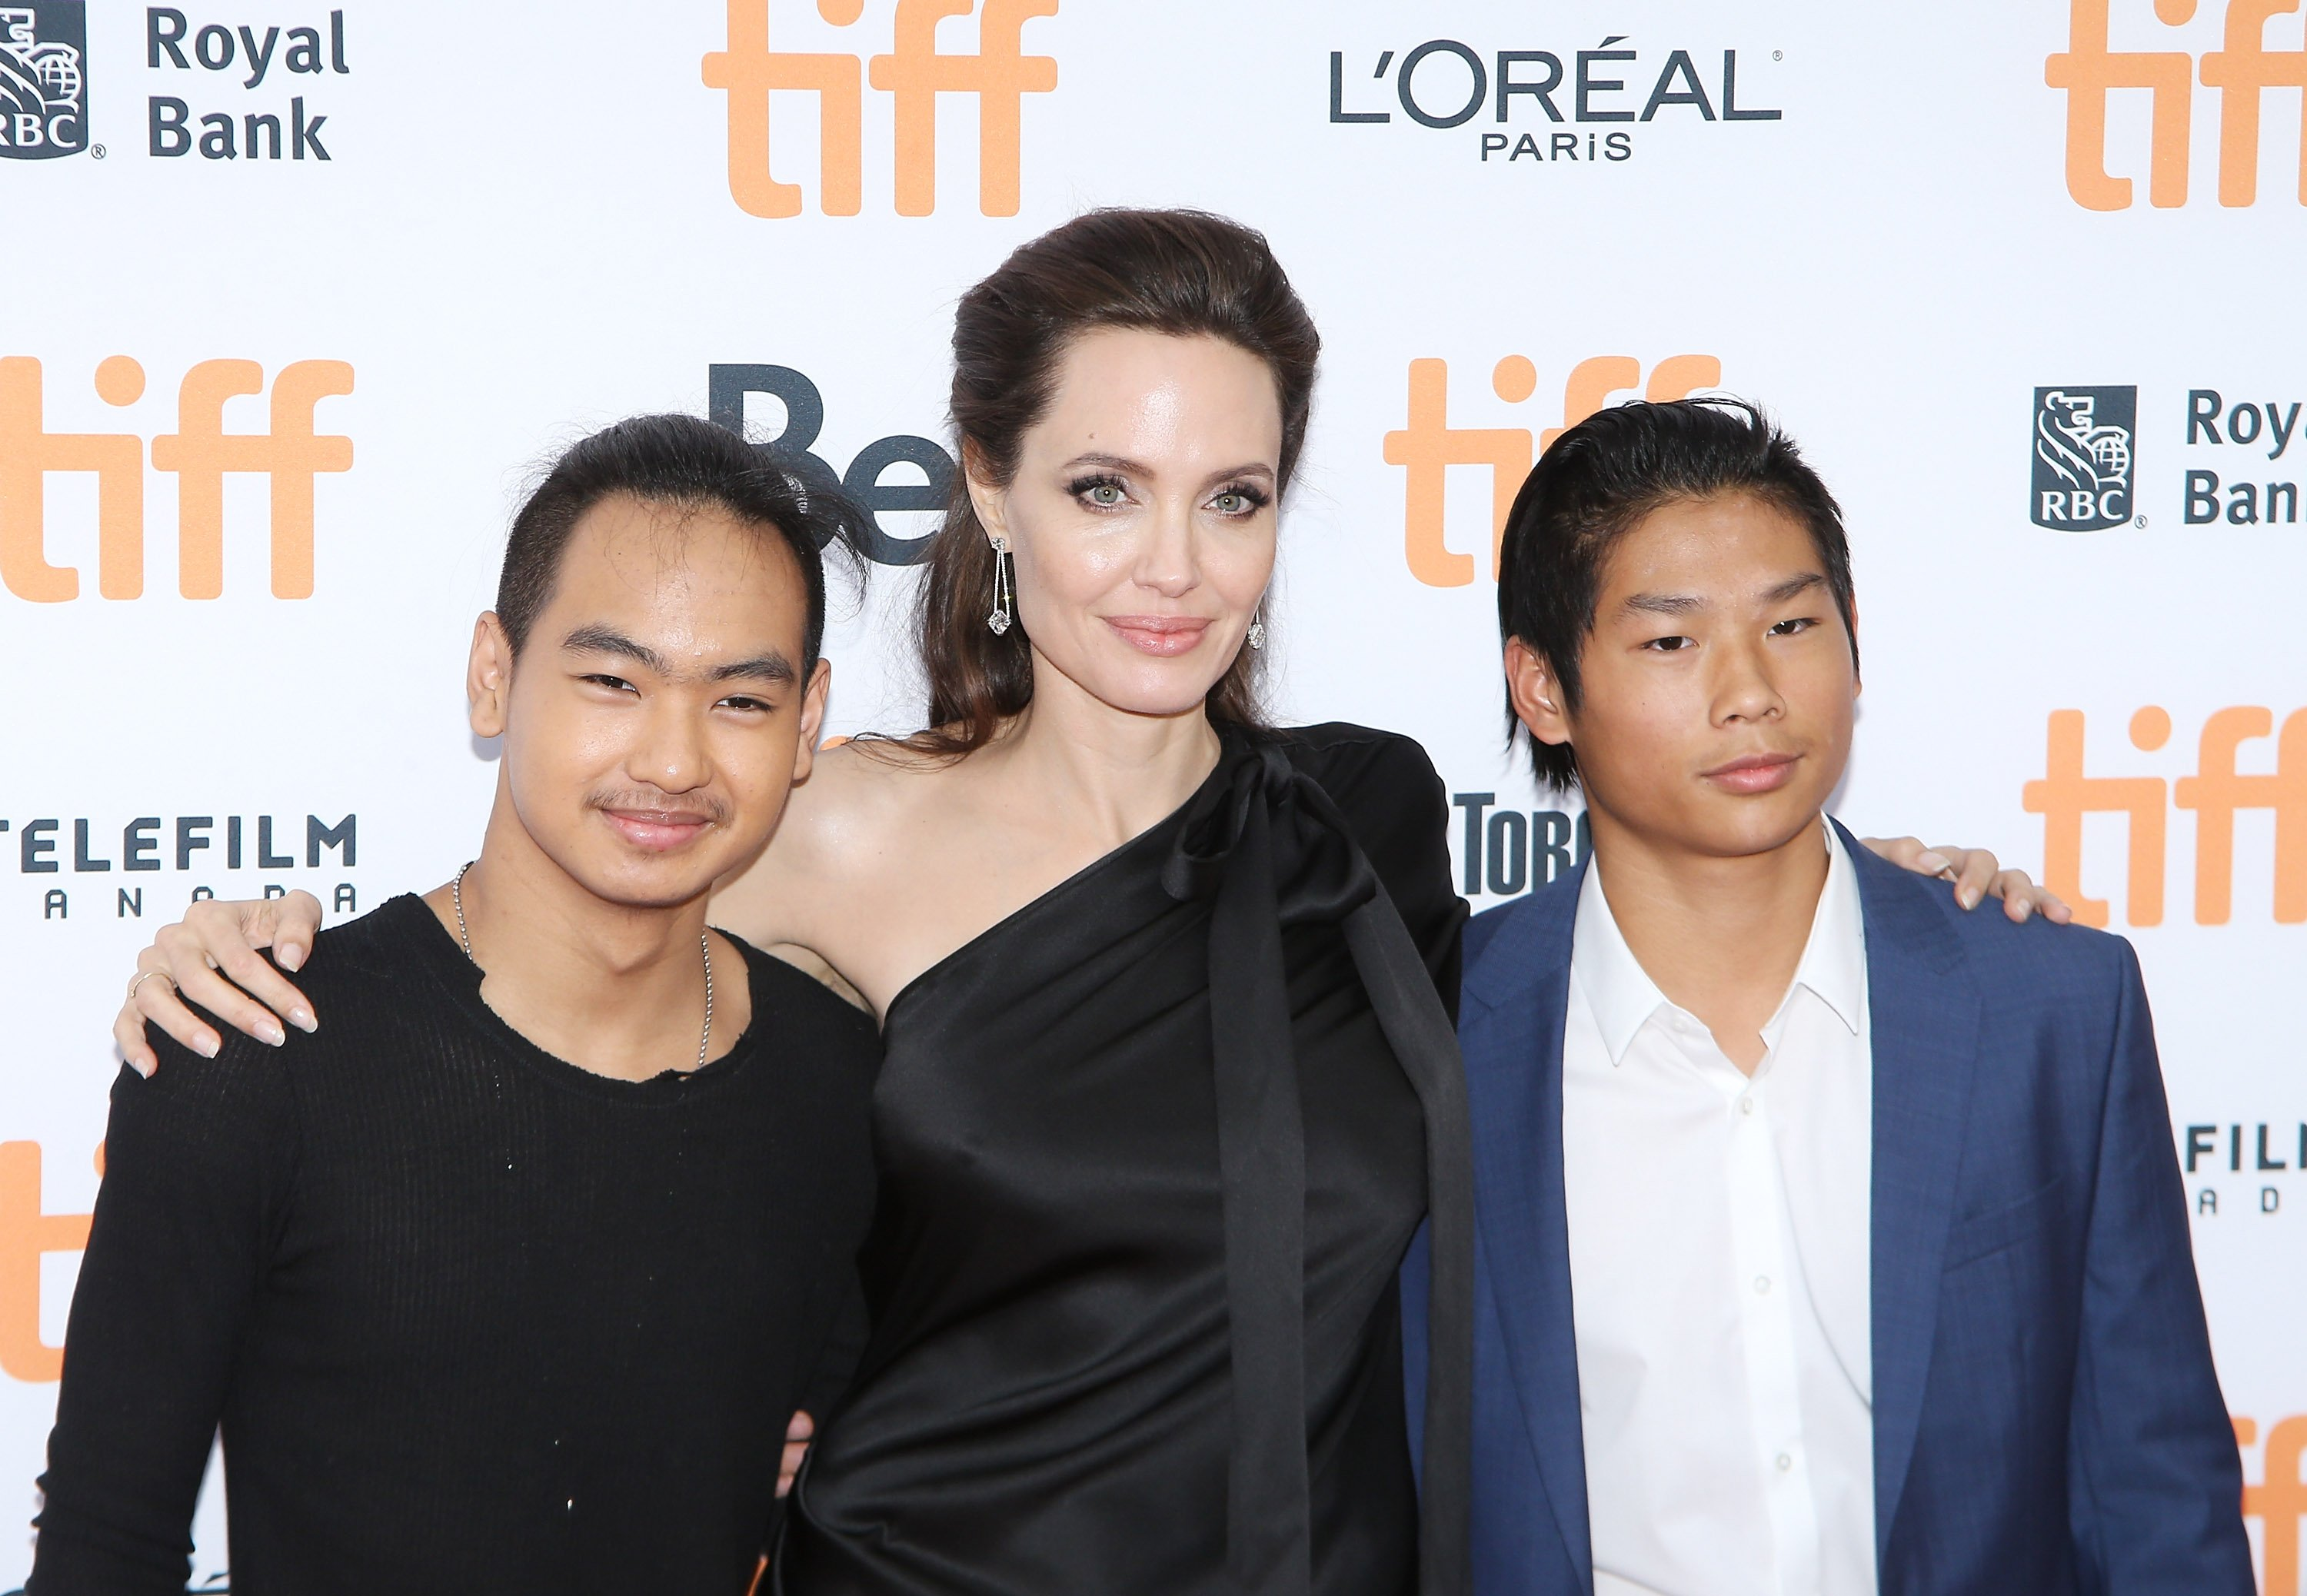 Image Credit: Getty Images/Michael Tran   Angelina Jolie with her sons, Maddox Chivan Jolie-Pitt and Pax Thien Jolie-Pitt